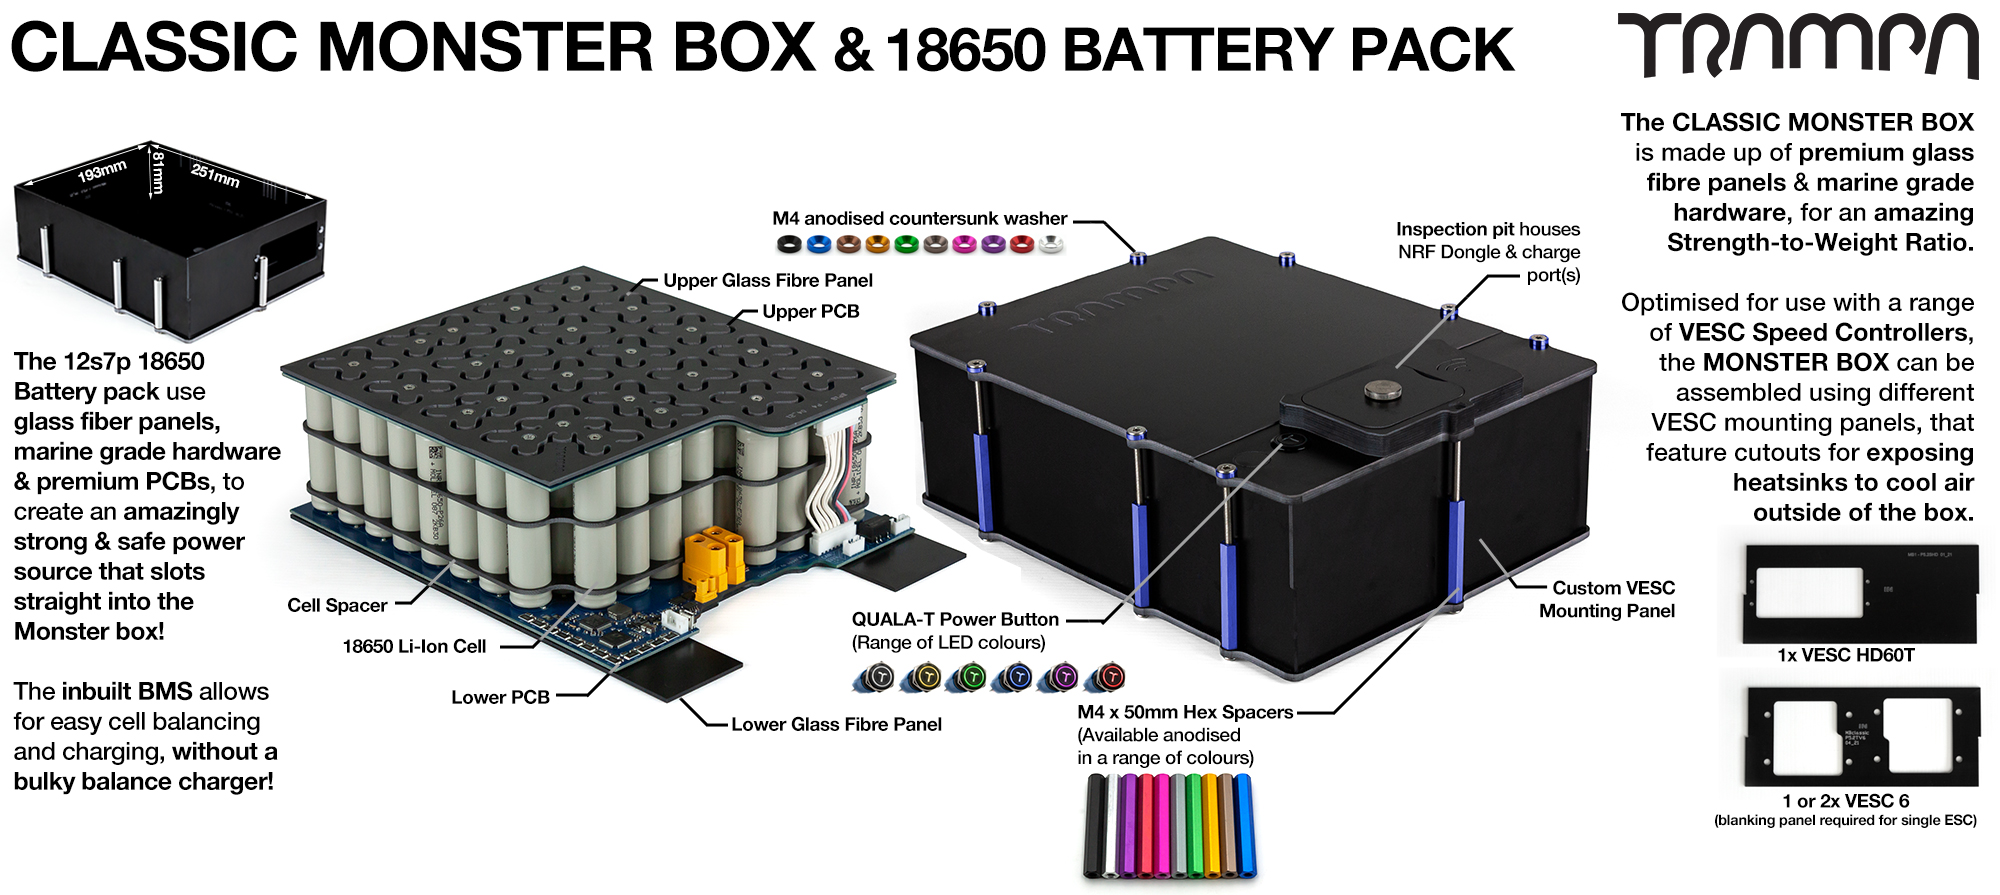 MONSTER Box MkIV - with 18650 PCB Pack & 84x 18650 cells 12s7p 21Ah - NO VESC - PCB based Battery Pack with Integrated Battery Management System (BMS) with 84x 18650 cells to make 12s7p 21A - UK CUSTOMERS ONLY